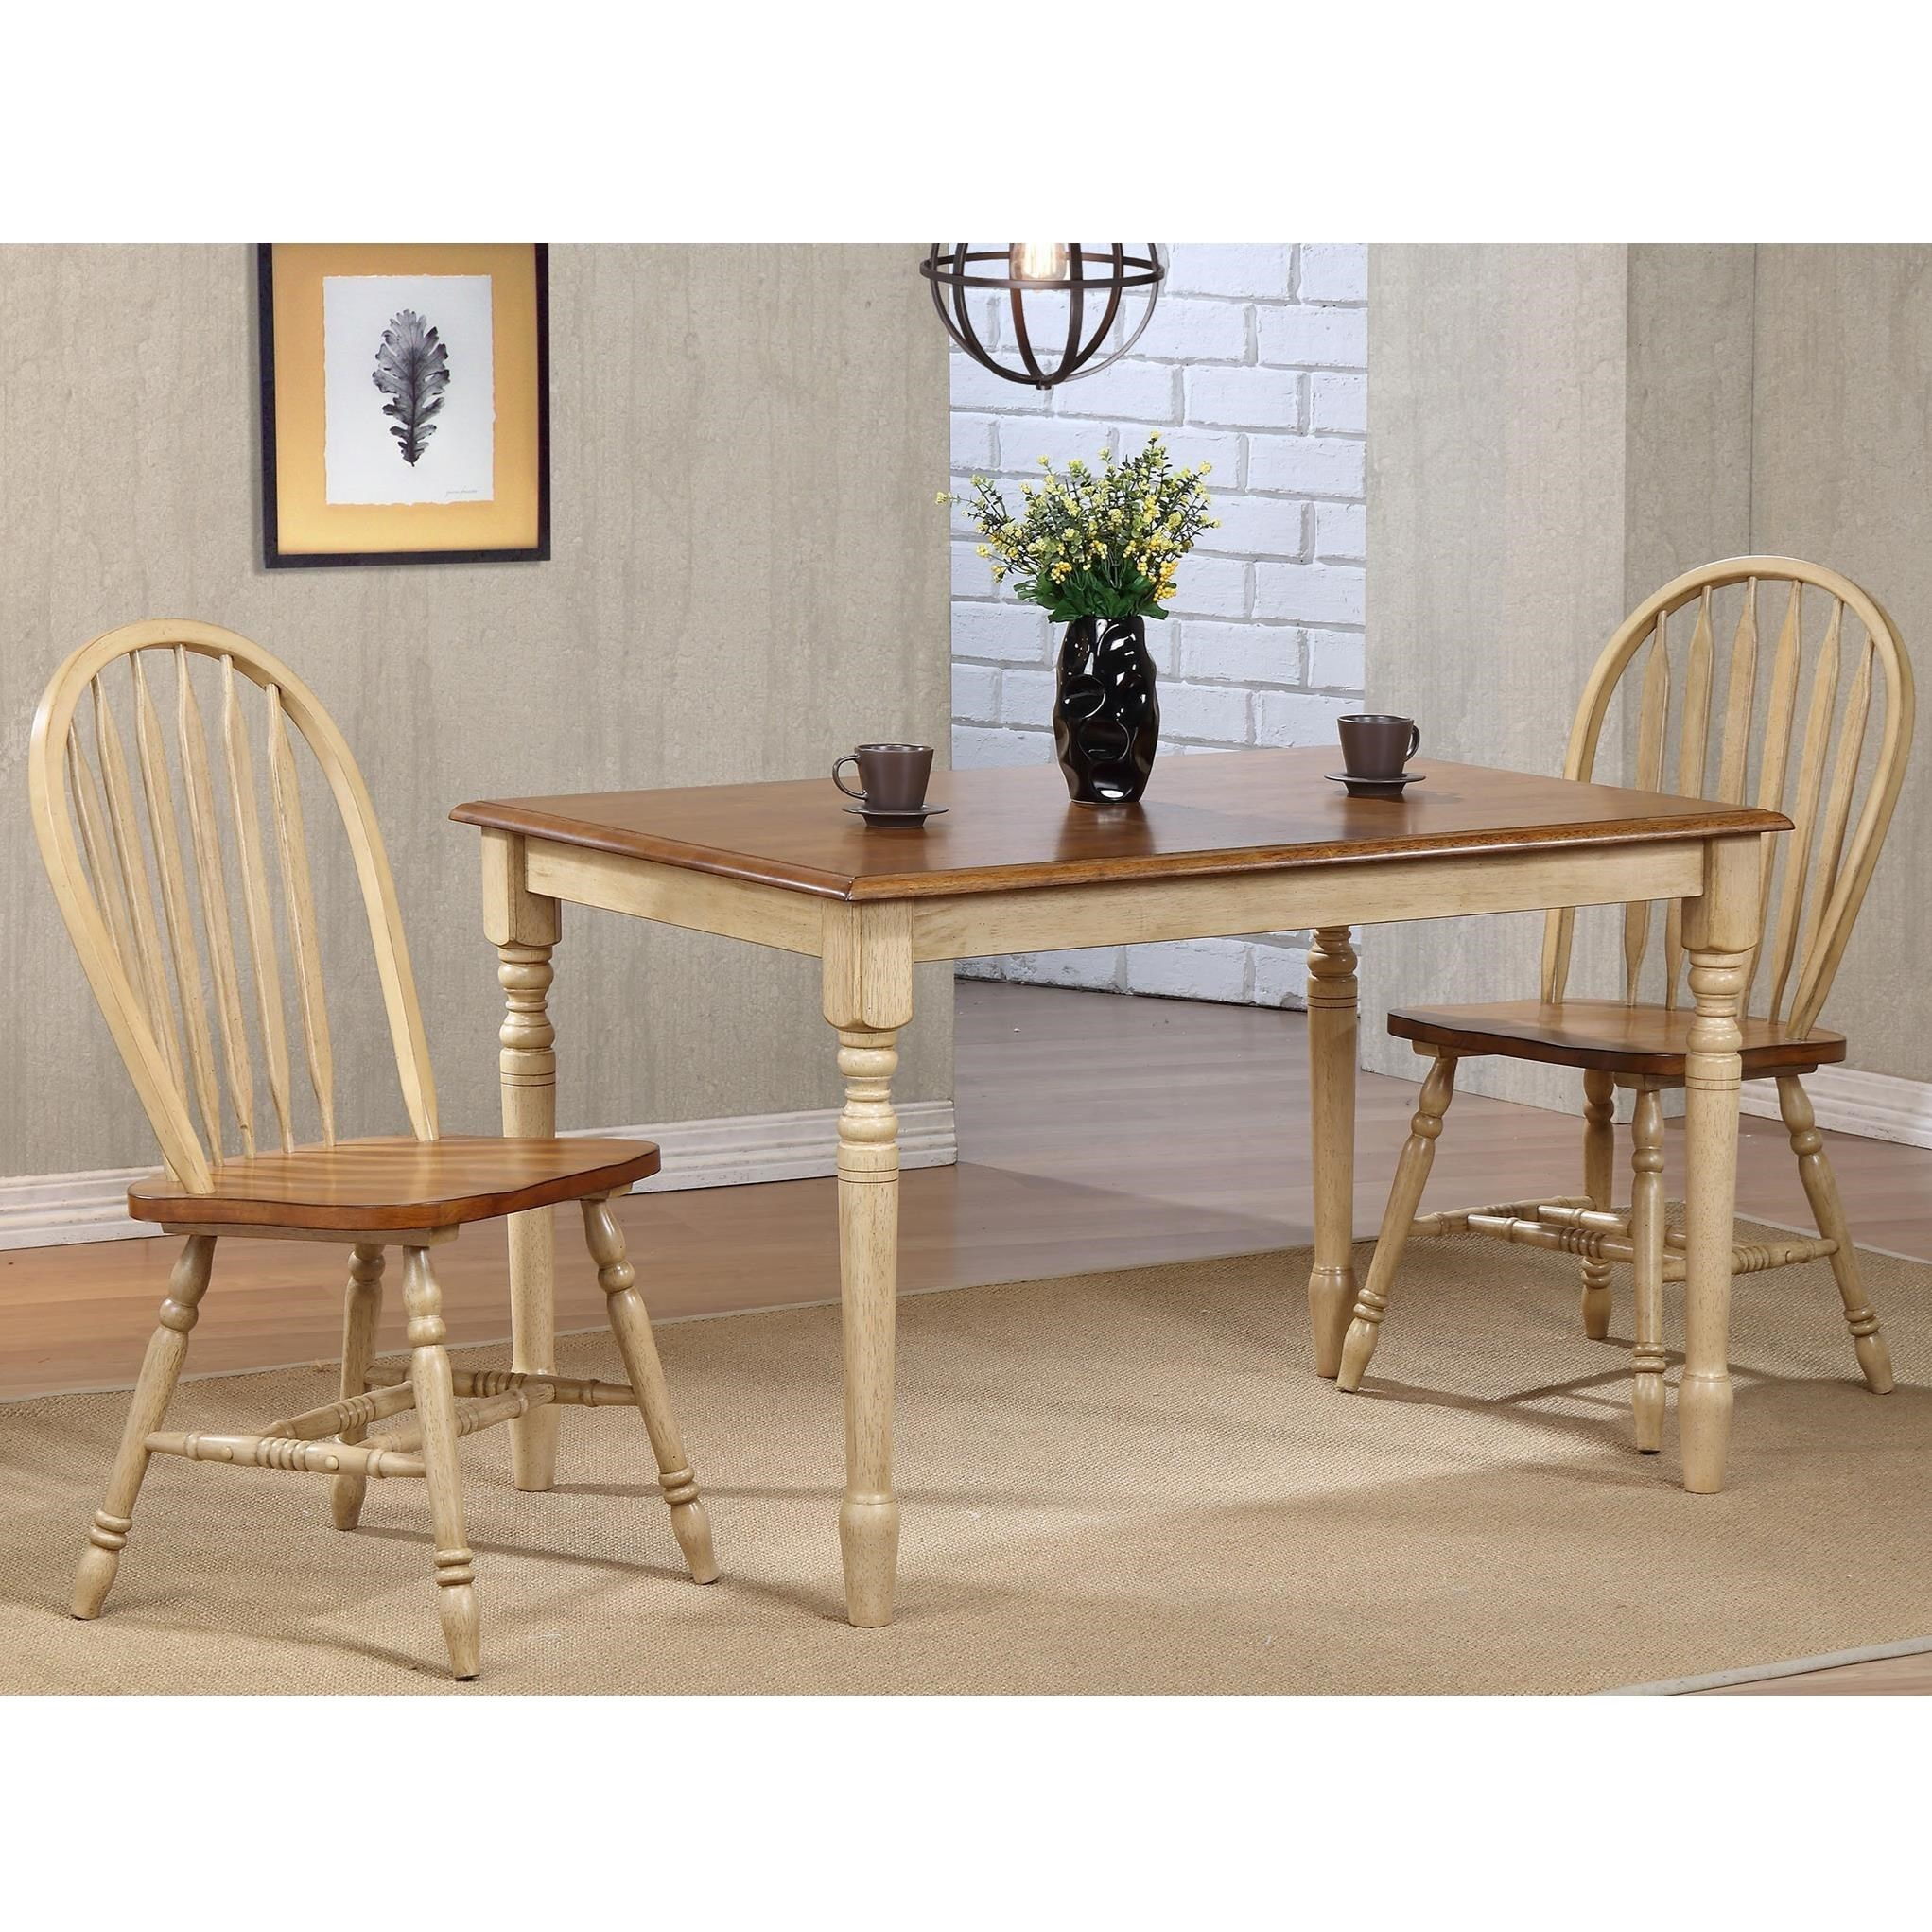 Farmington 3 Piece Dining Set By Winners Only